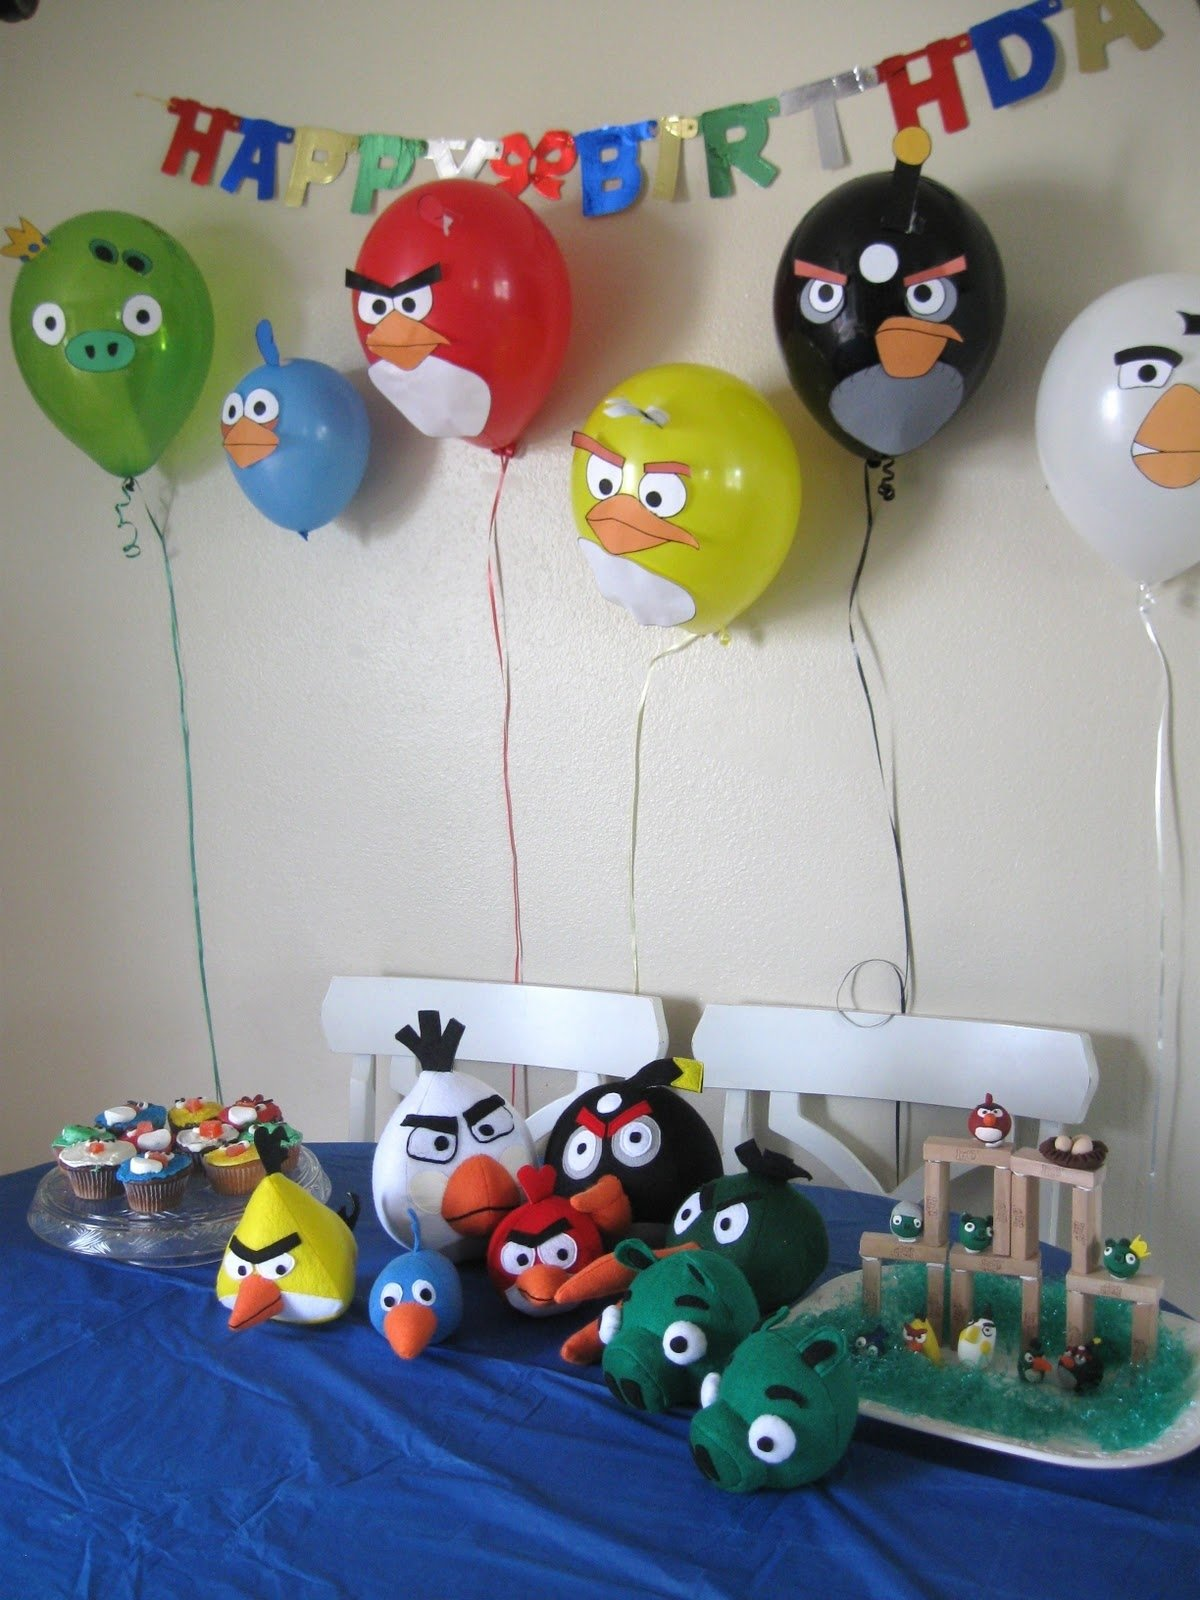 10 Most Recommended 5 Yr Old Boy Birthday Party Ideas Angry Birds Balloons Jacks Next